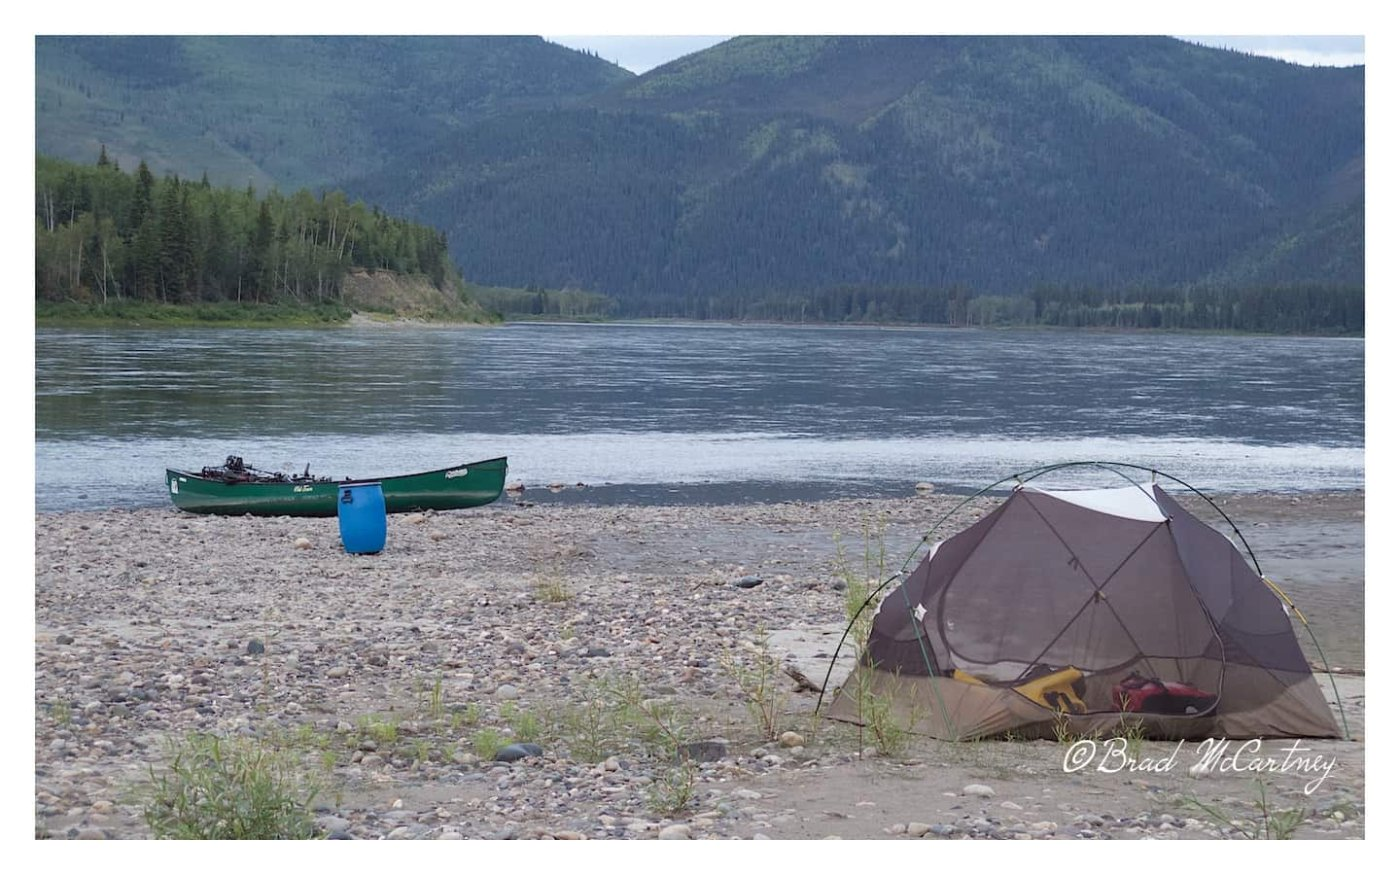 Campsite on an Island while canoeing the Yukon River